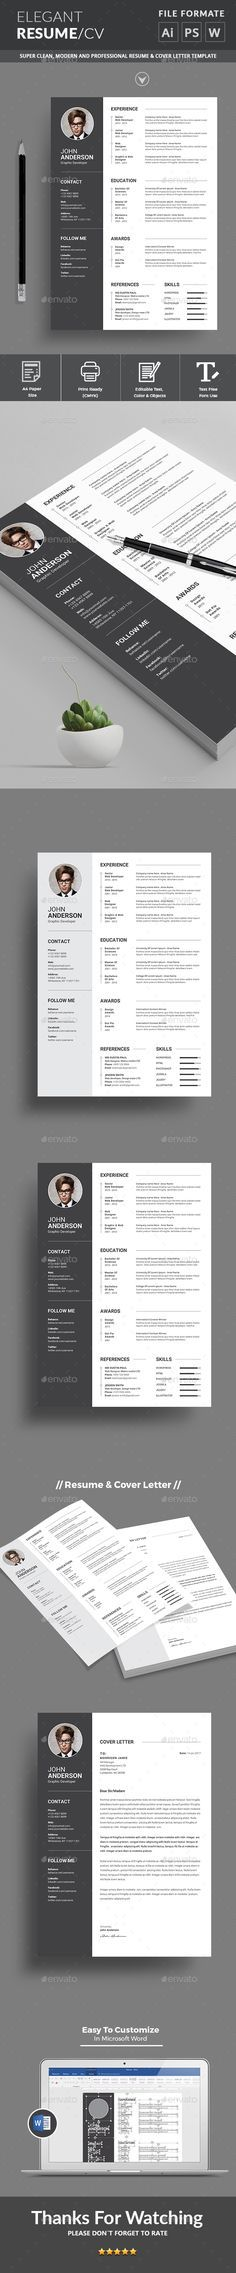 Resume - Resumes Stationery Download here: https://graphicriver.net/item/resume/19352701?ref=classicdesignp